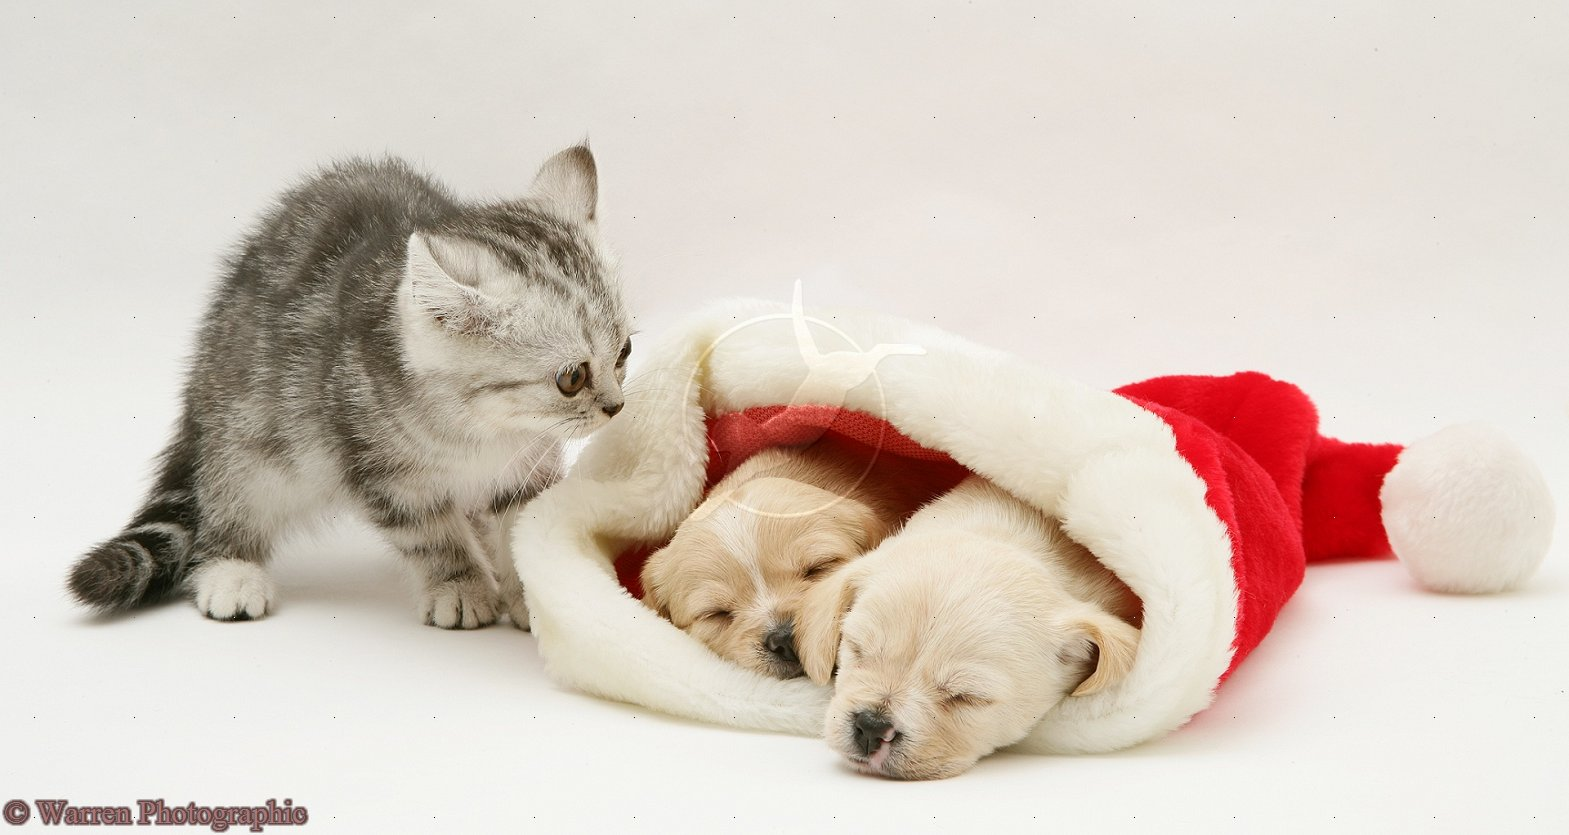 48 Cute Puppy And Kitten Wallpapers On Wallpapersafari